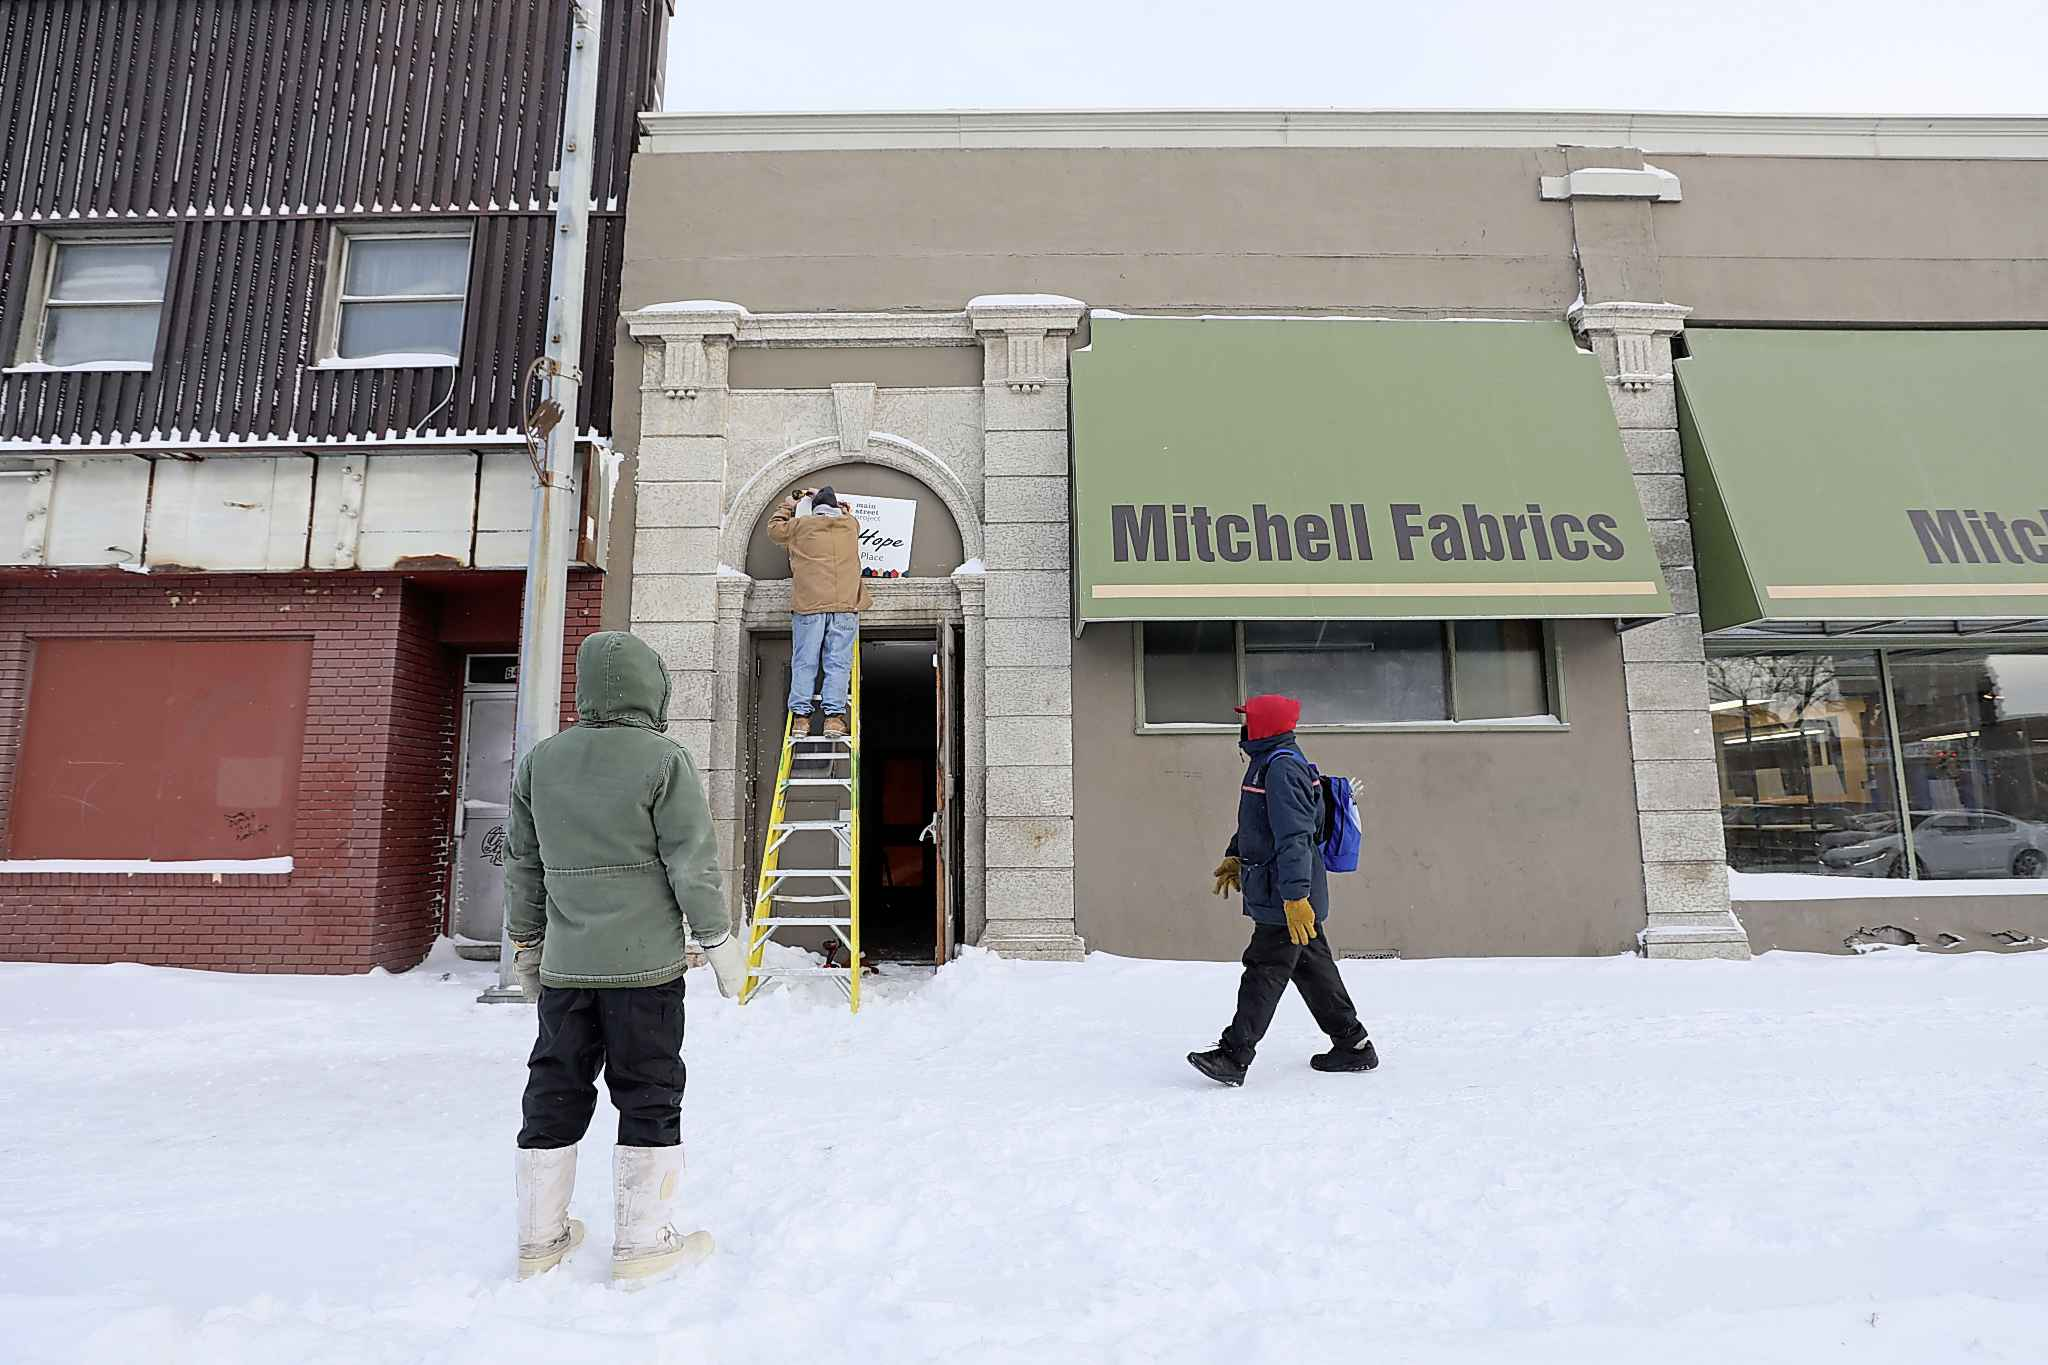 The drop-in warming centre is located in the former Mitchell Fabrics building on Main Street.